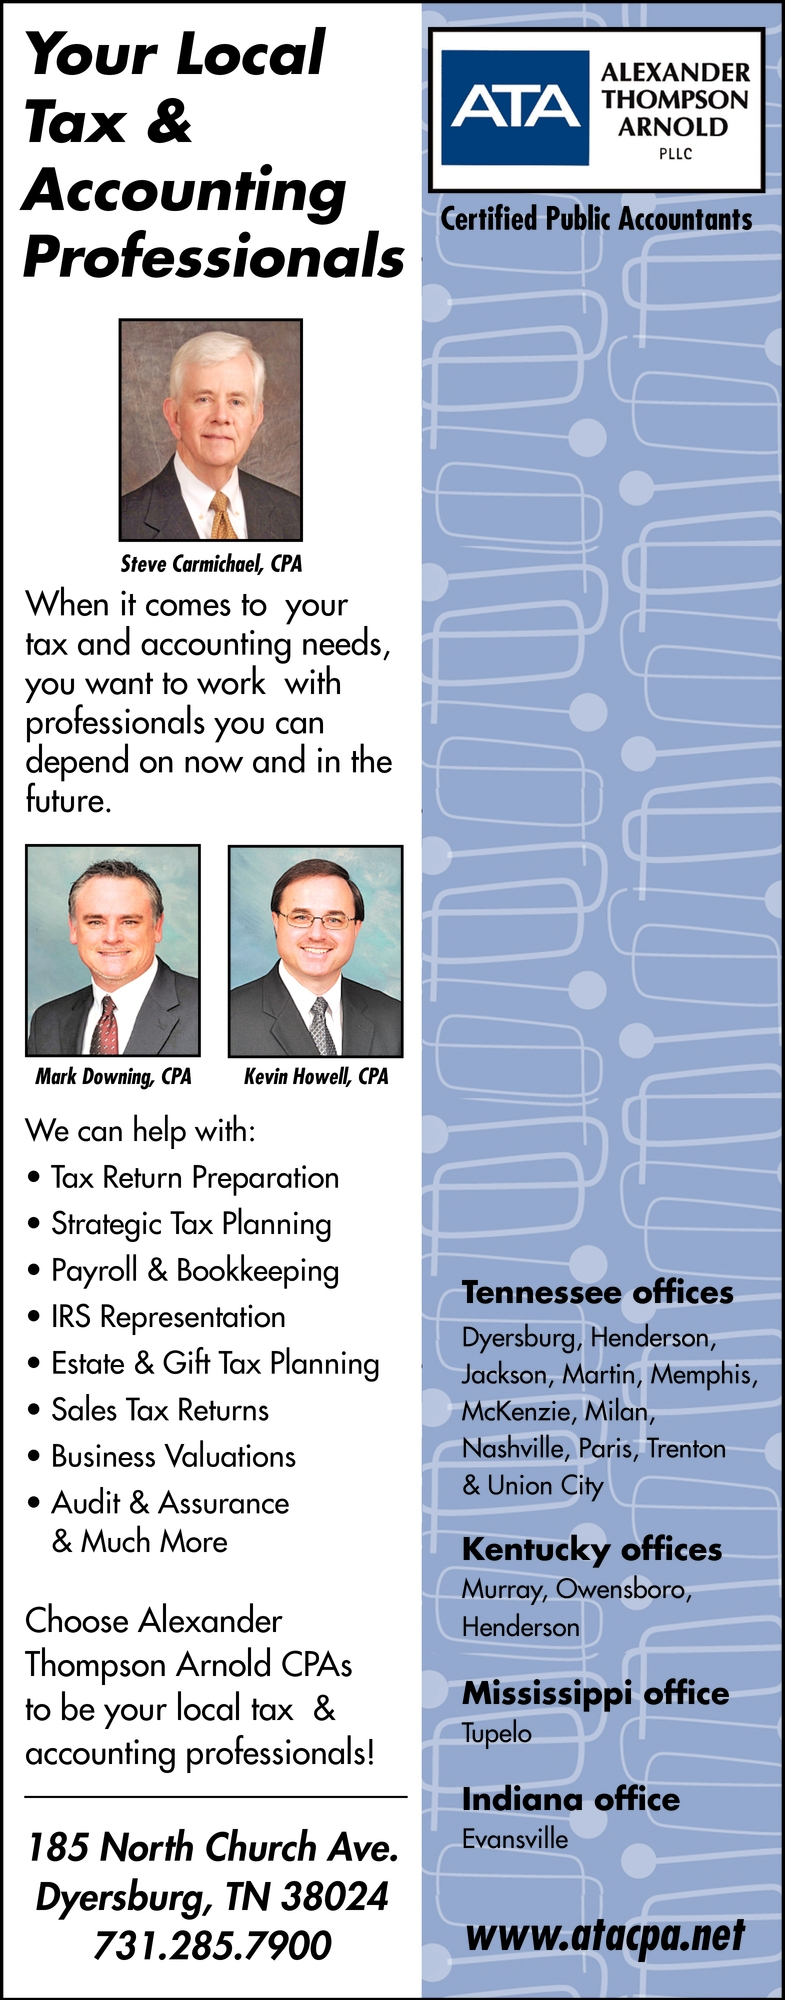 Your Local Tax & Accouting Professionals